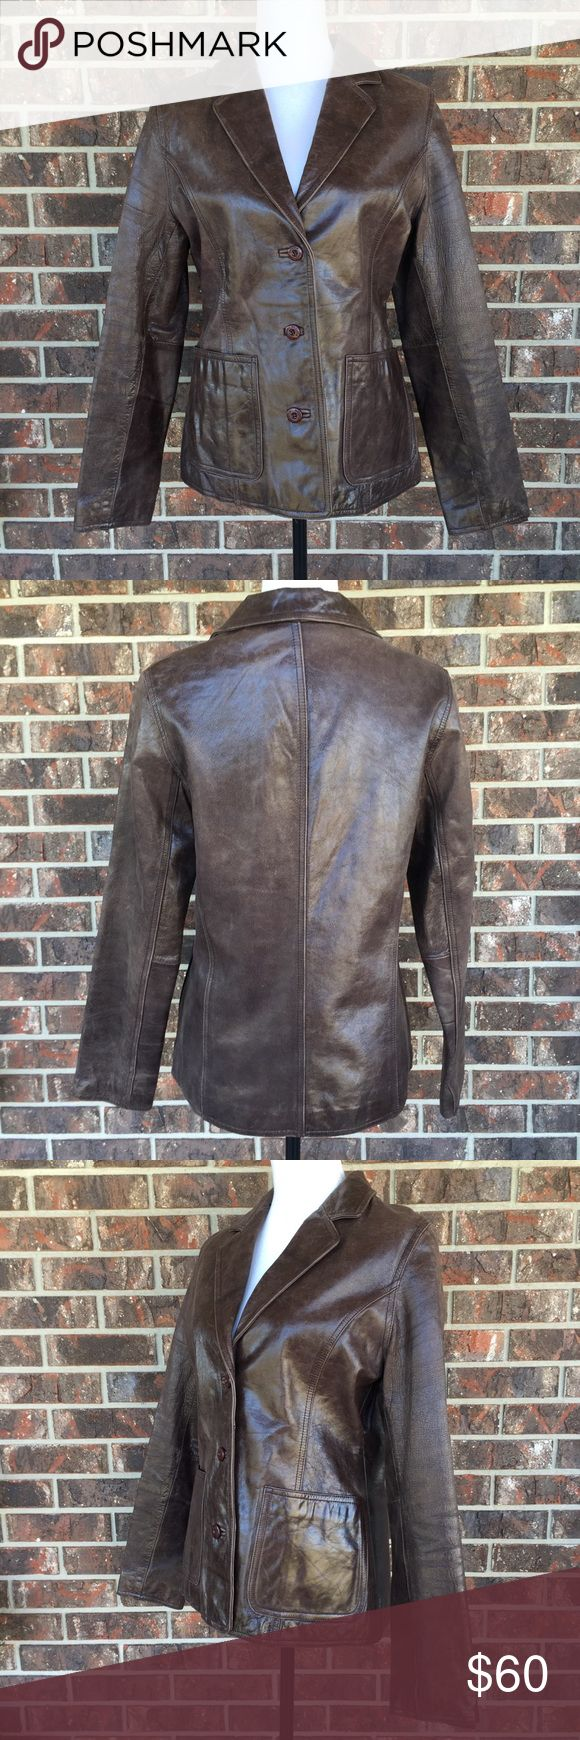 Vintage Wilson Leather Maxima Jacket (With images